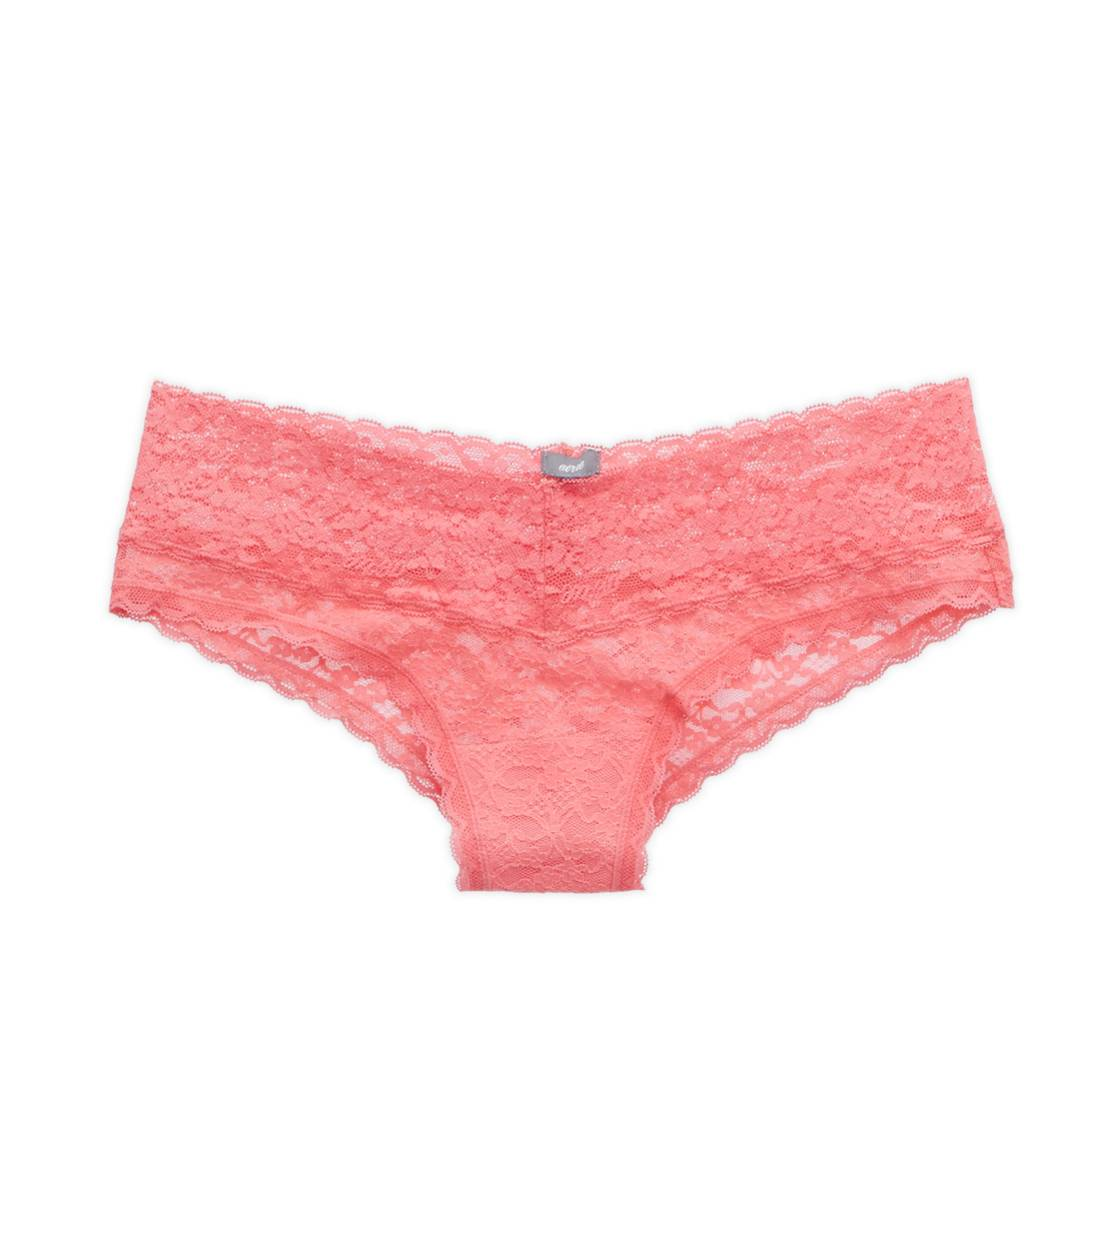 Candied Rhubarb Aerie Vintage Lace Cheeky